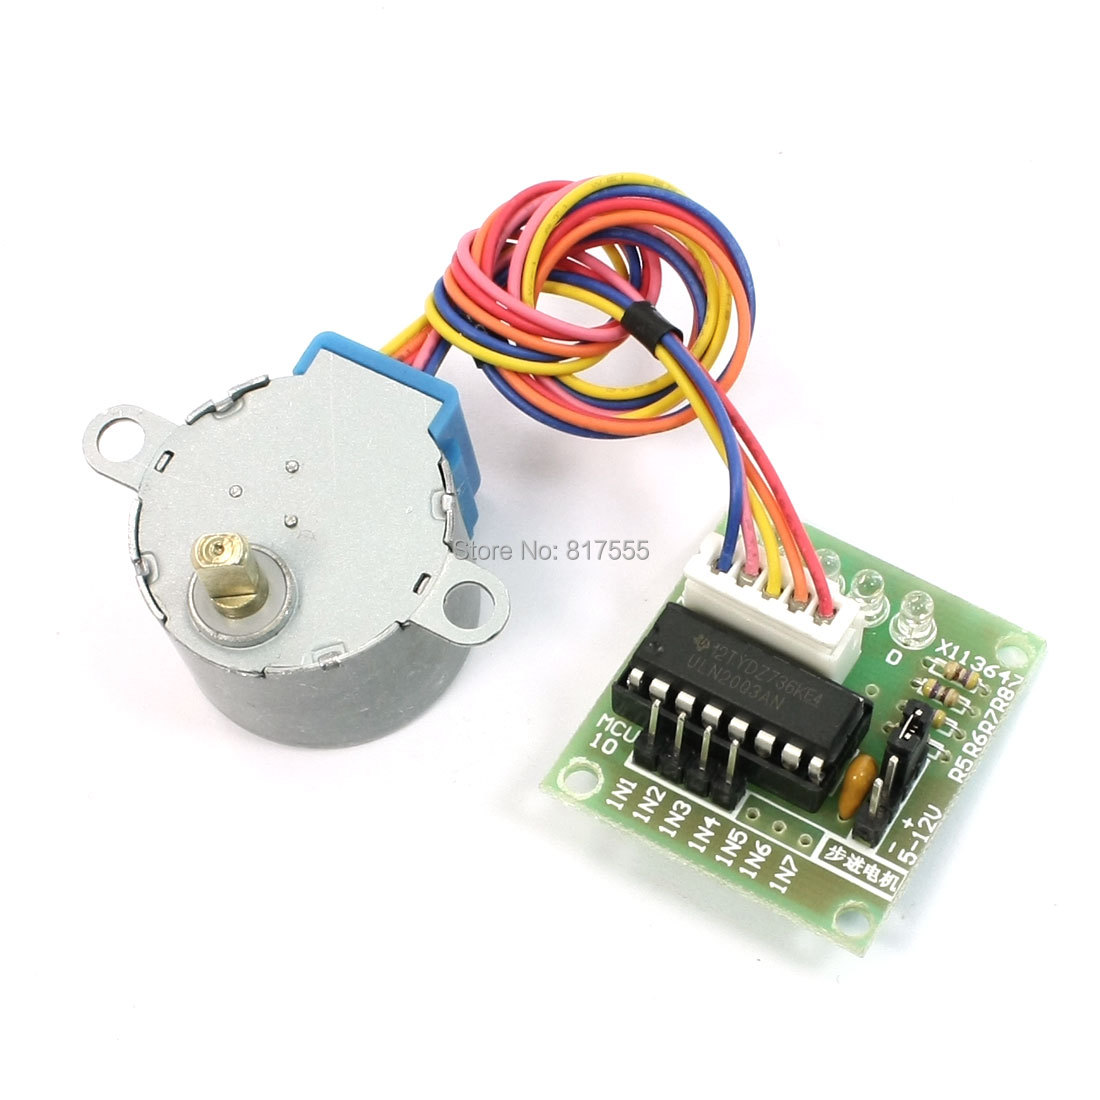 hight resolution of mcu diy 4 phase 5 wires stepper motor 5v with ul2003 driver board stepper motor wiring 4 stepper motor wiring 5 wire